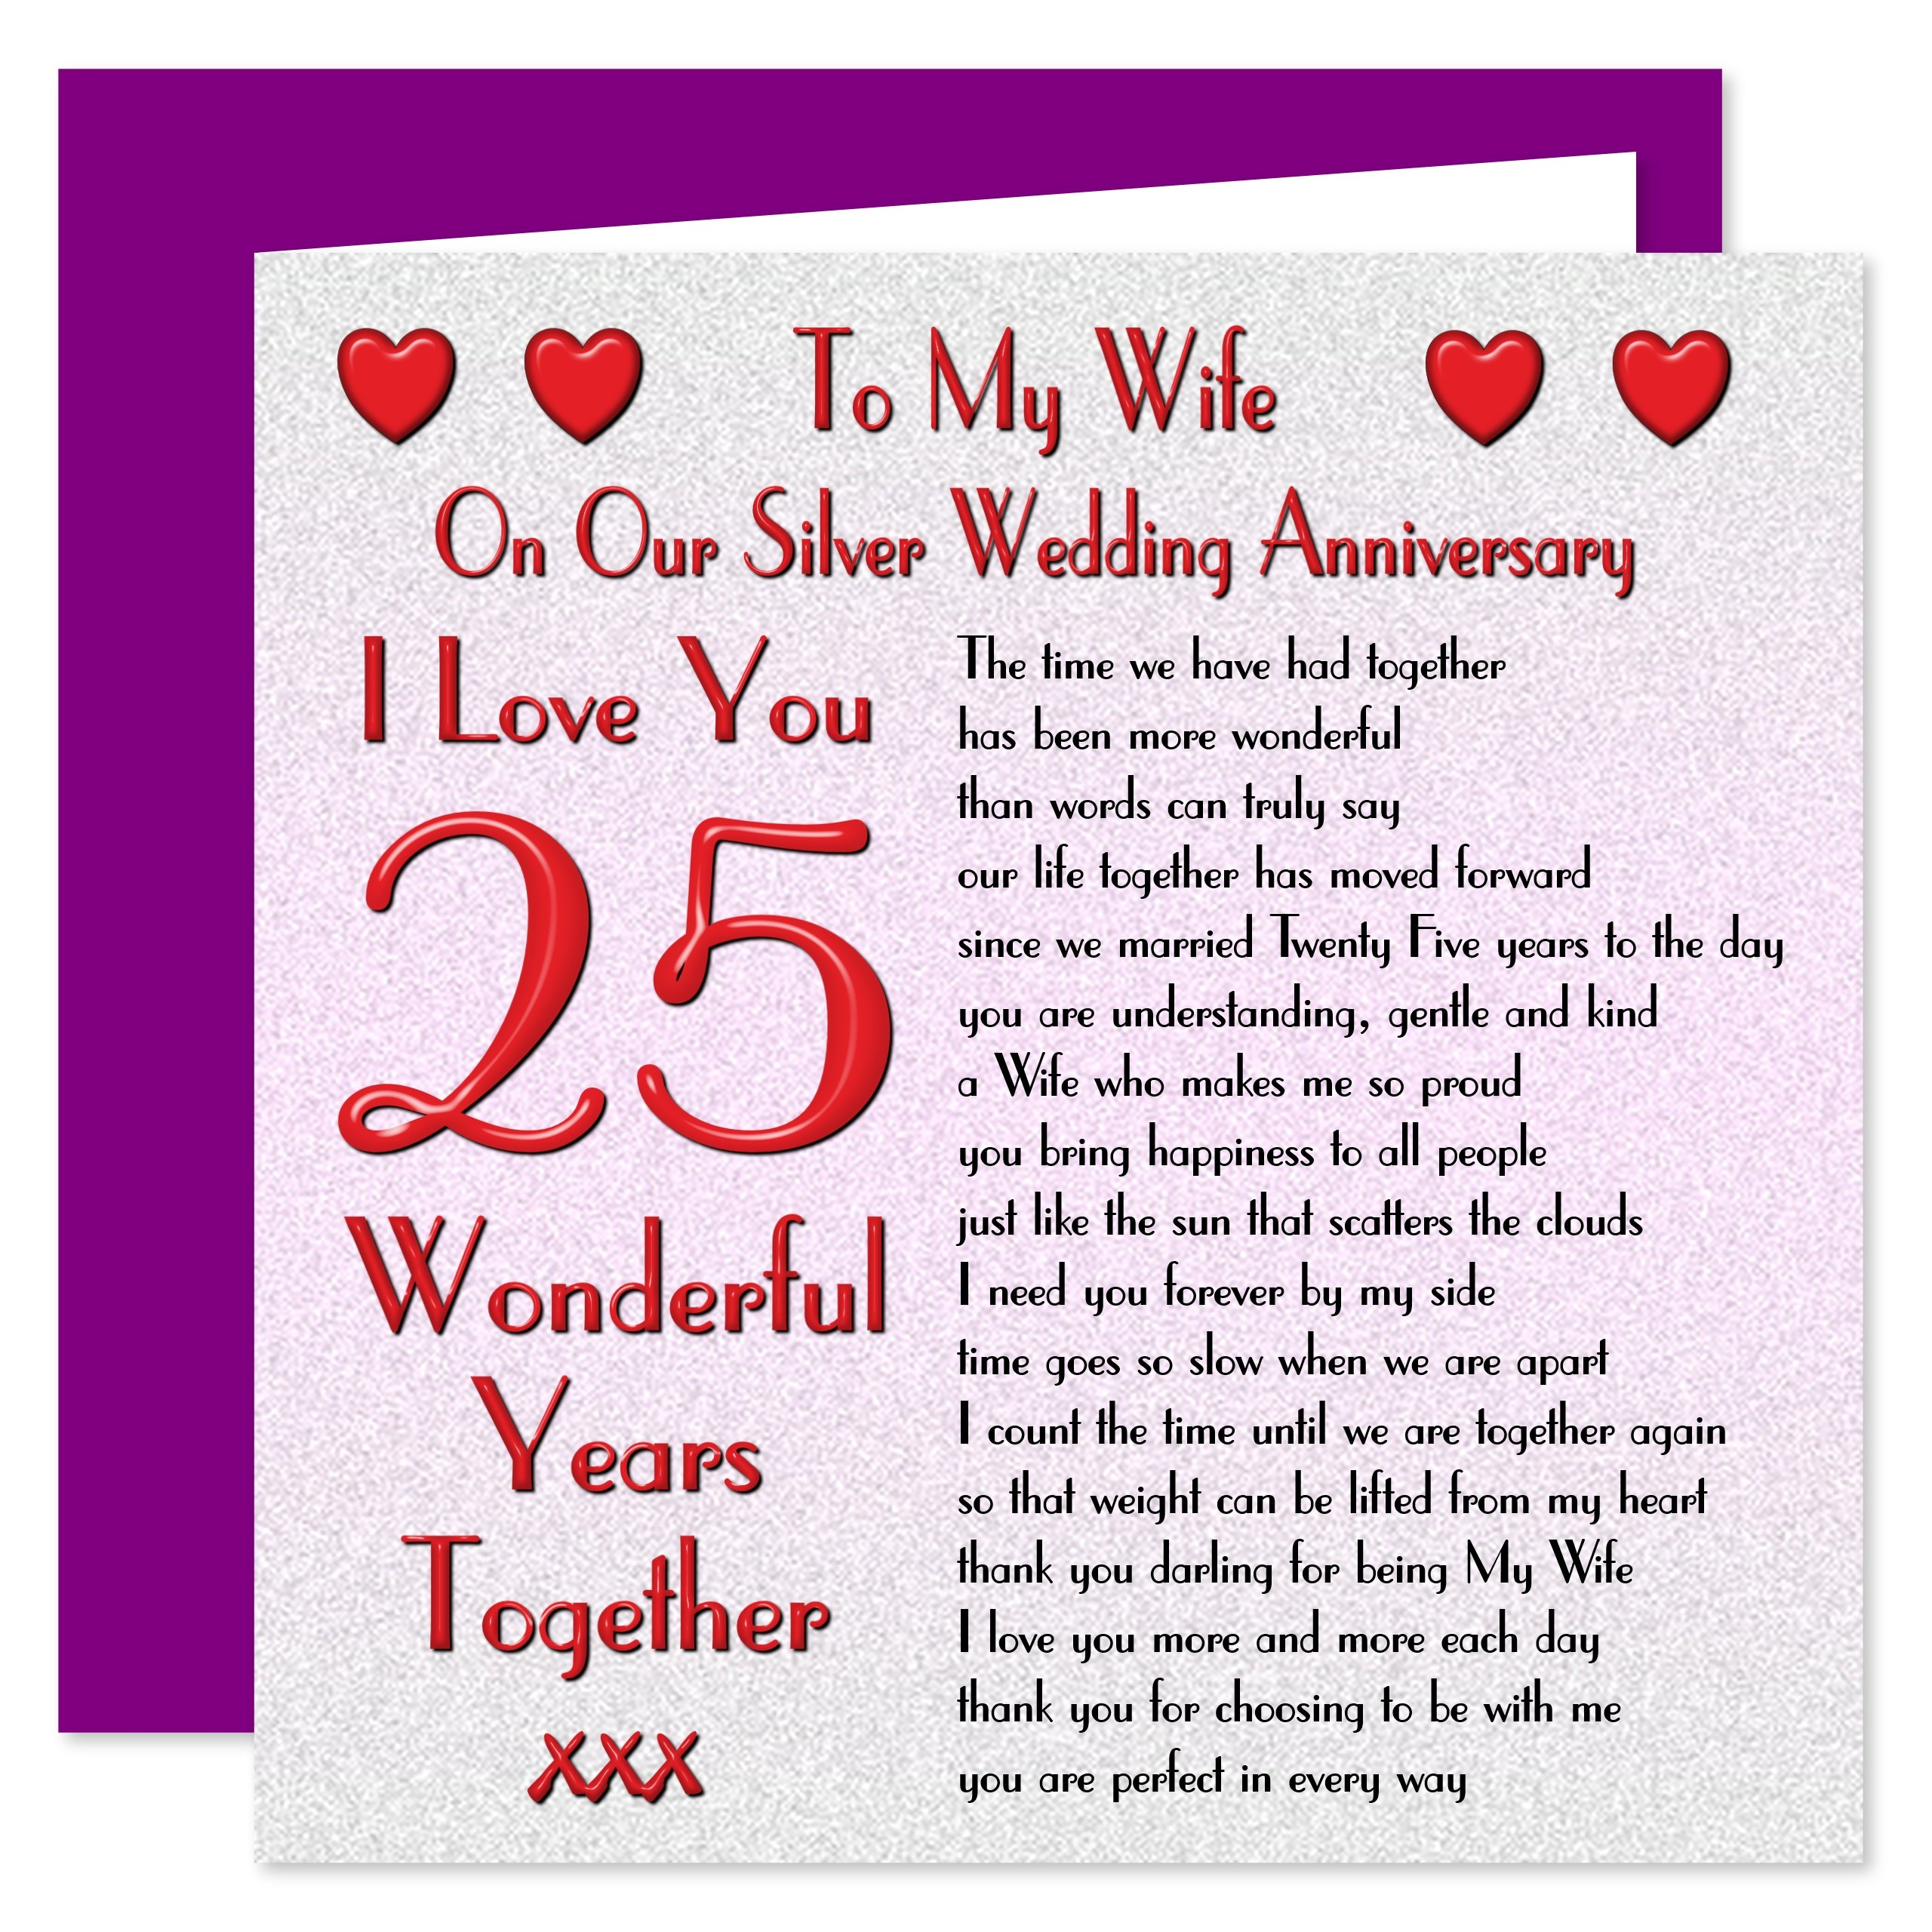 My Wife 25th Wedding Anniversary Card - On Our Silver Anniversary - 25 Years - Sentimental Verse I Love You